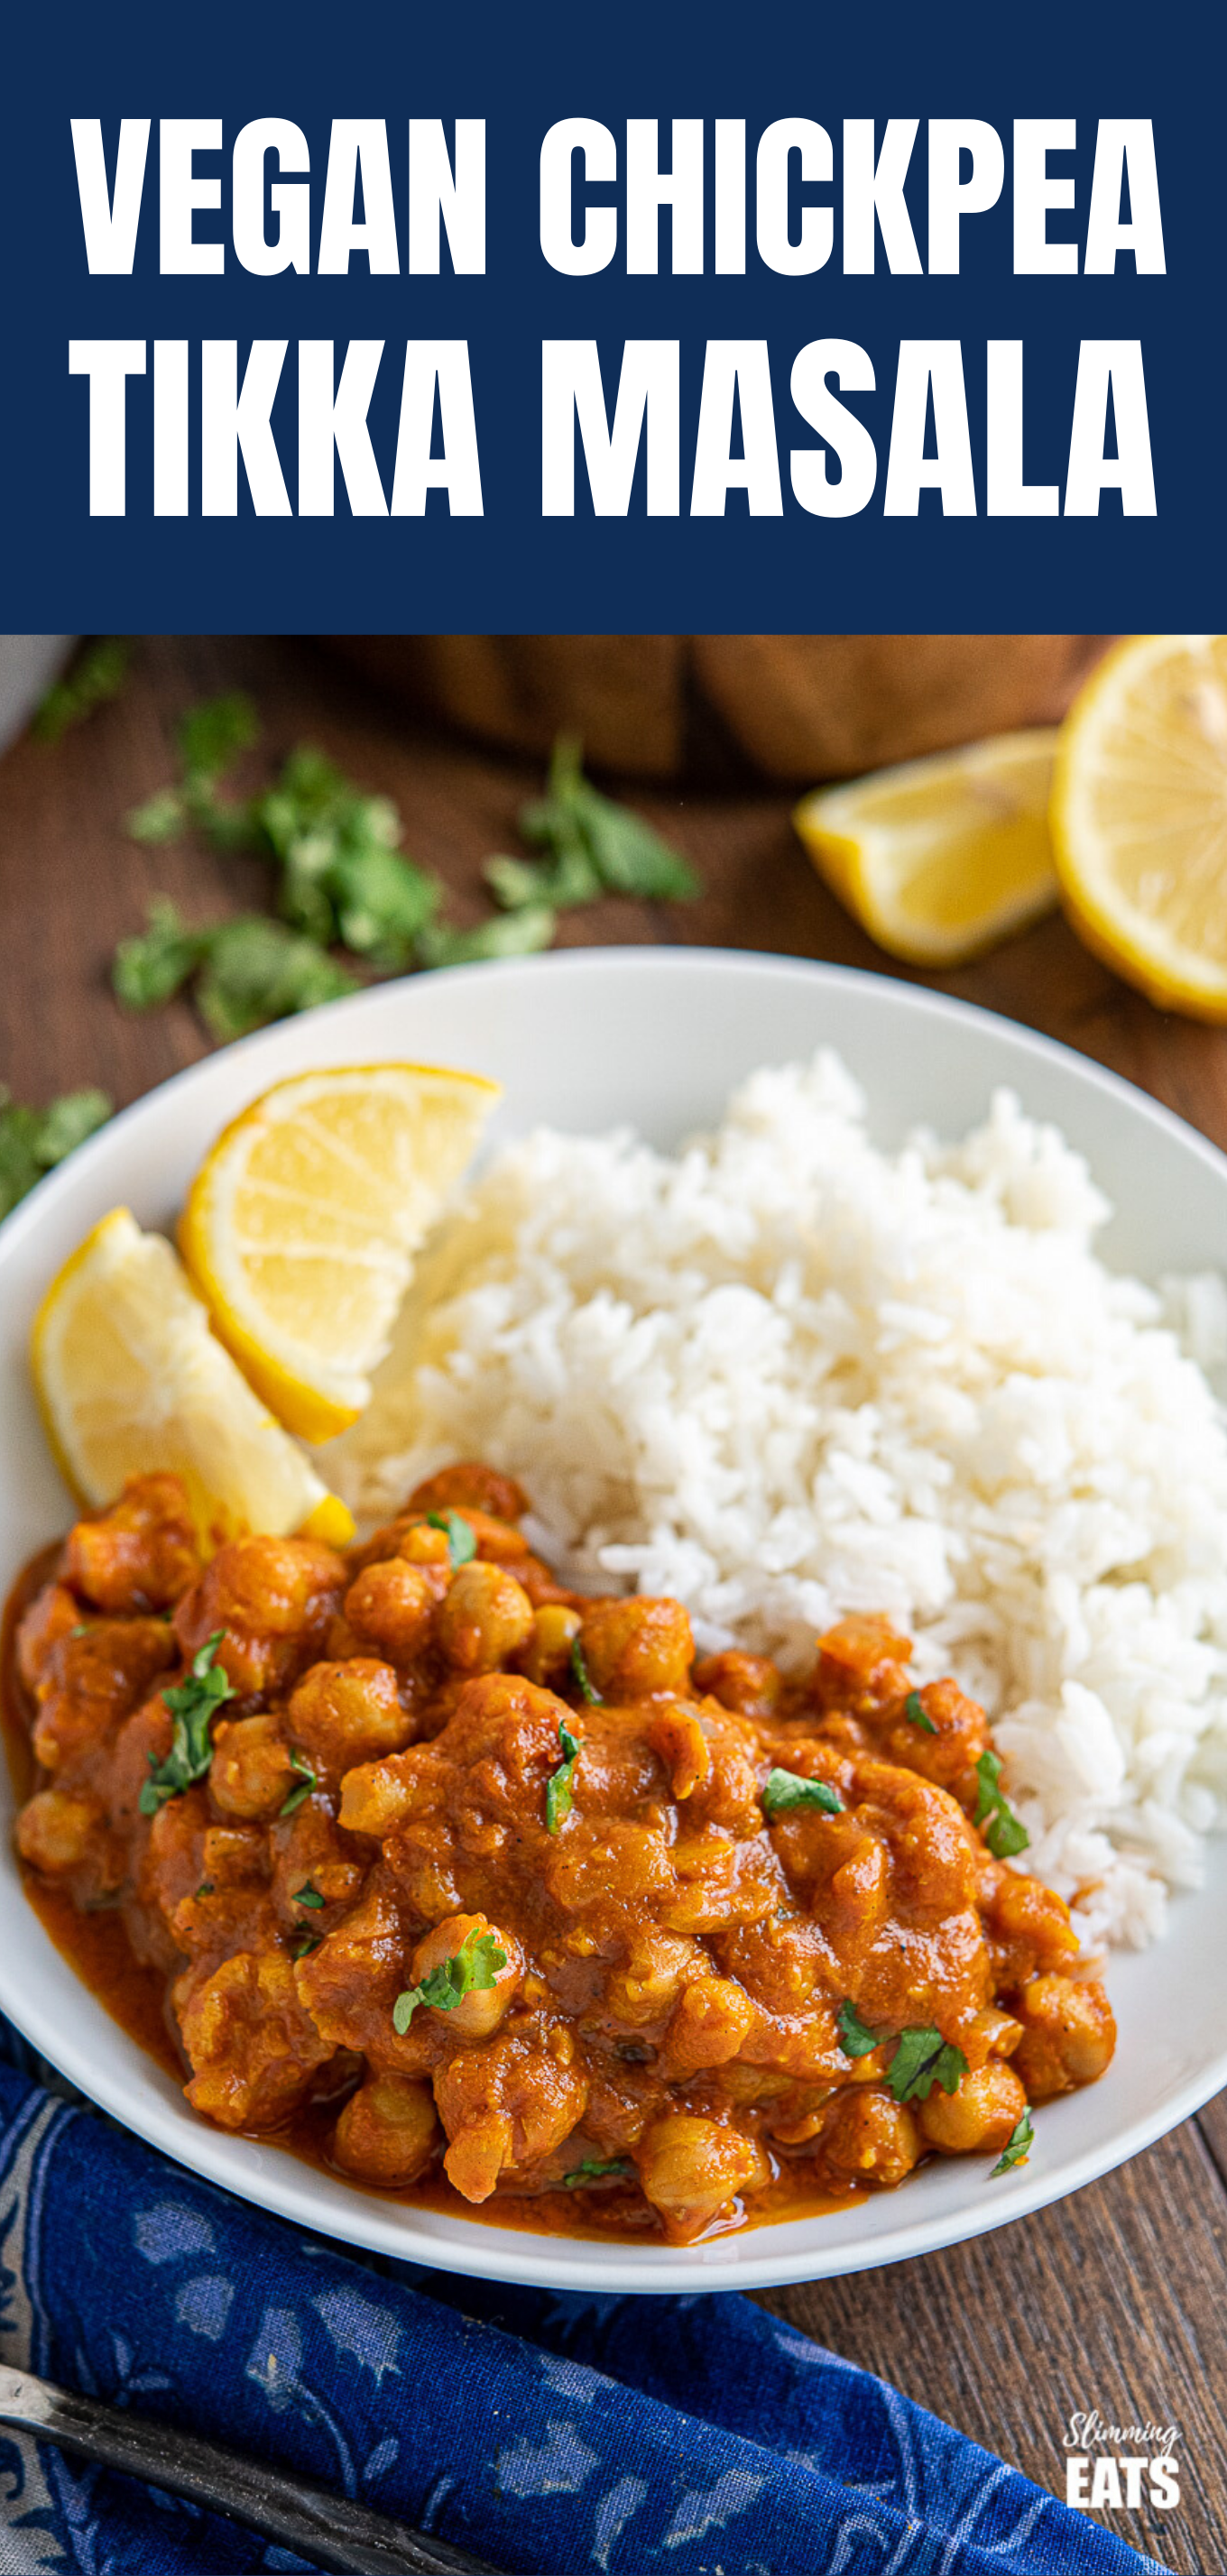 VEGAN TIKKA MASALA FEATURED PIN